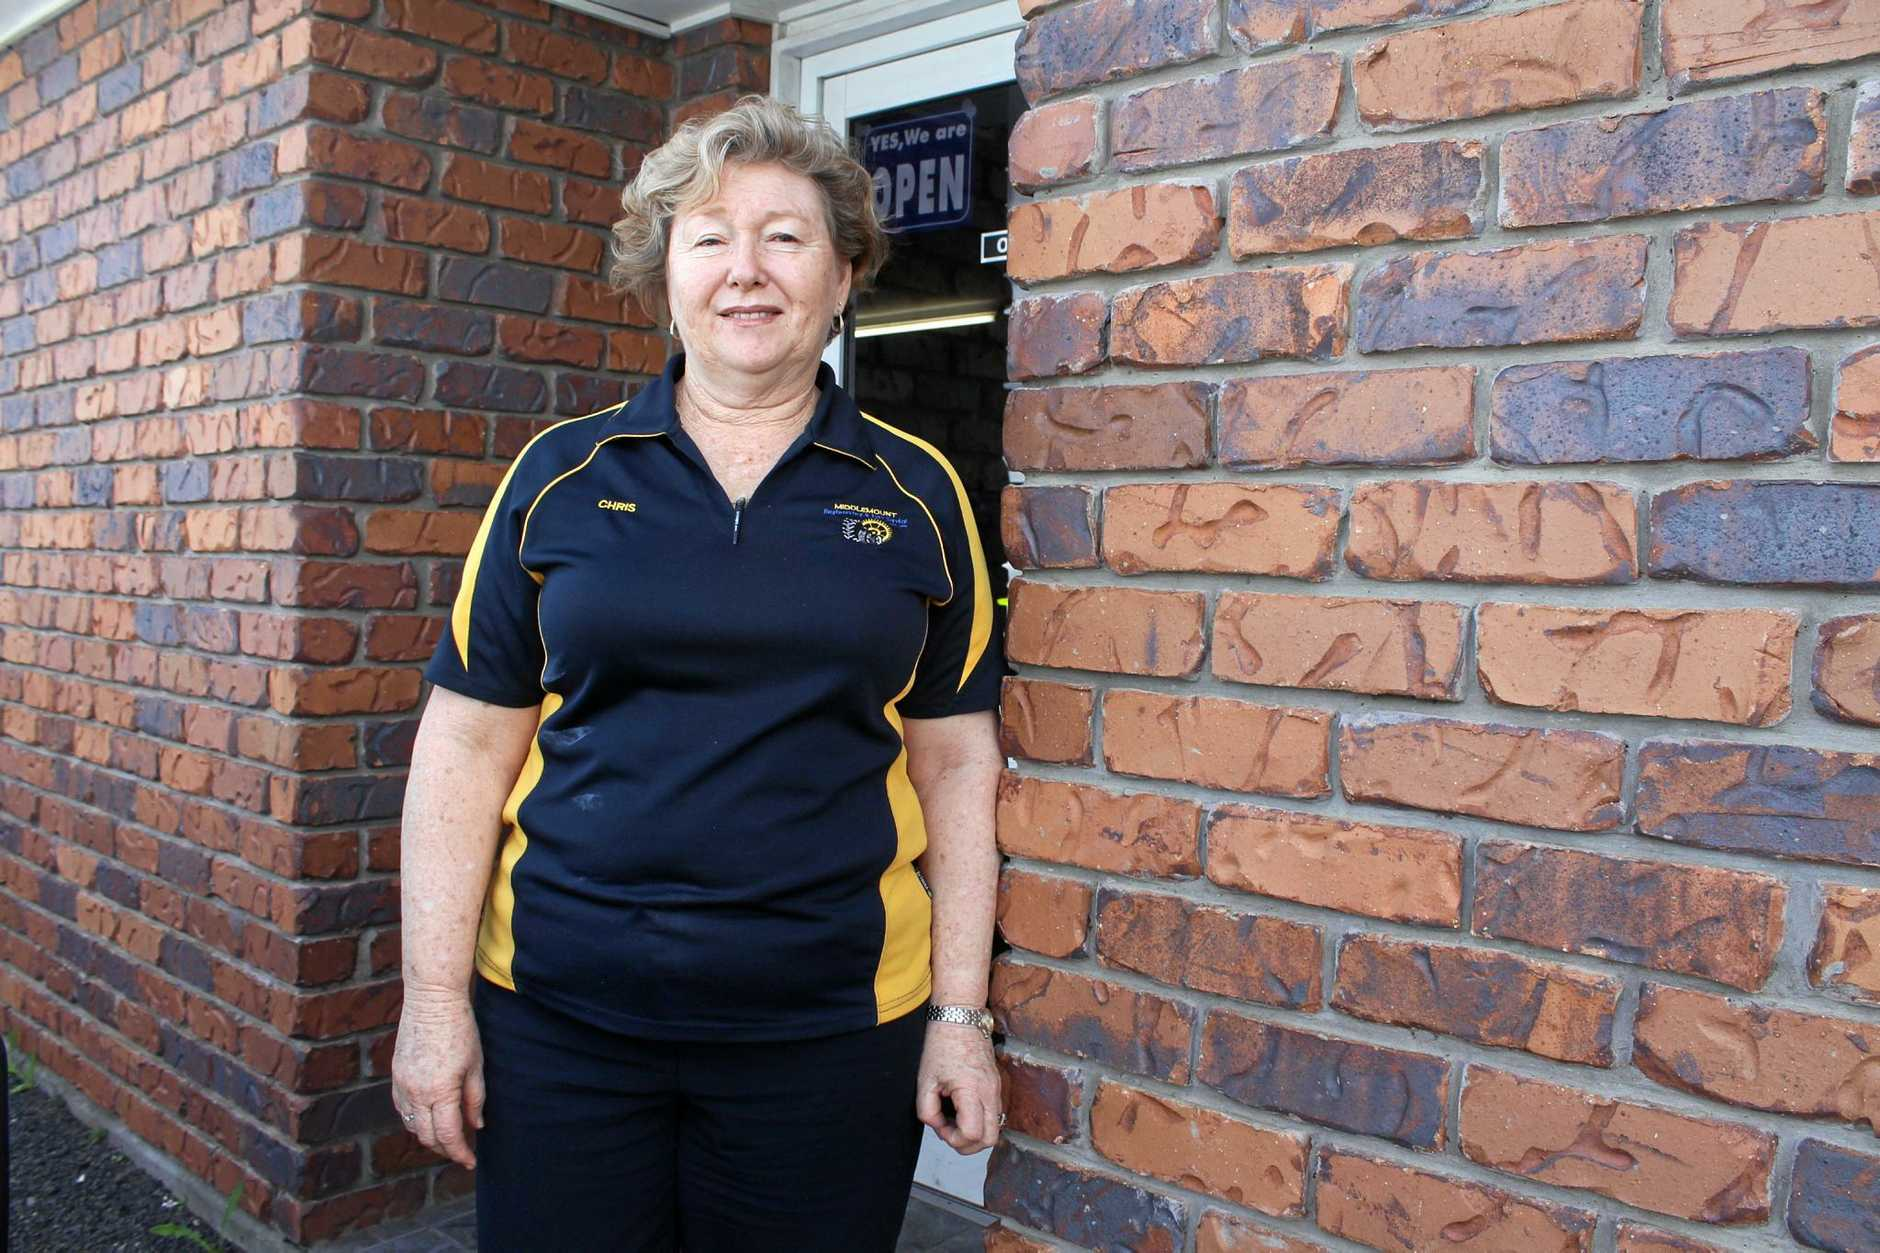 Chris Glasson has lived in Middlemount since 1981, two years after the town was opened.